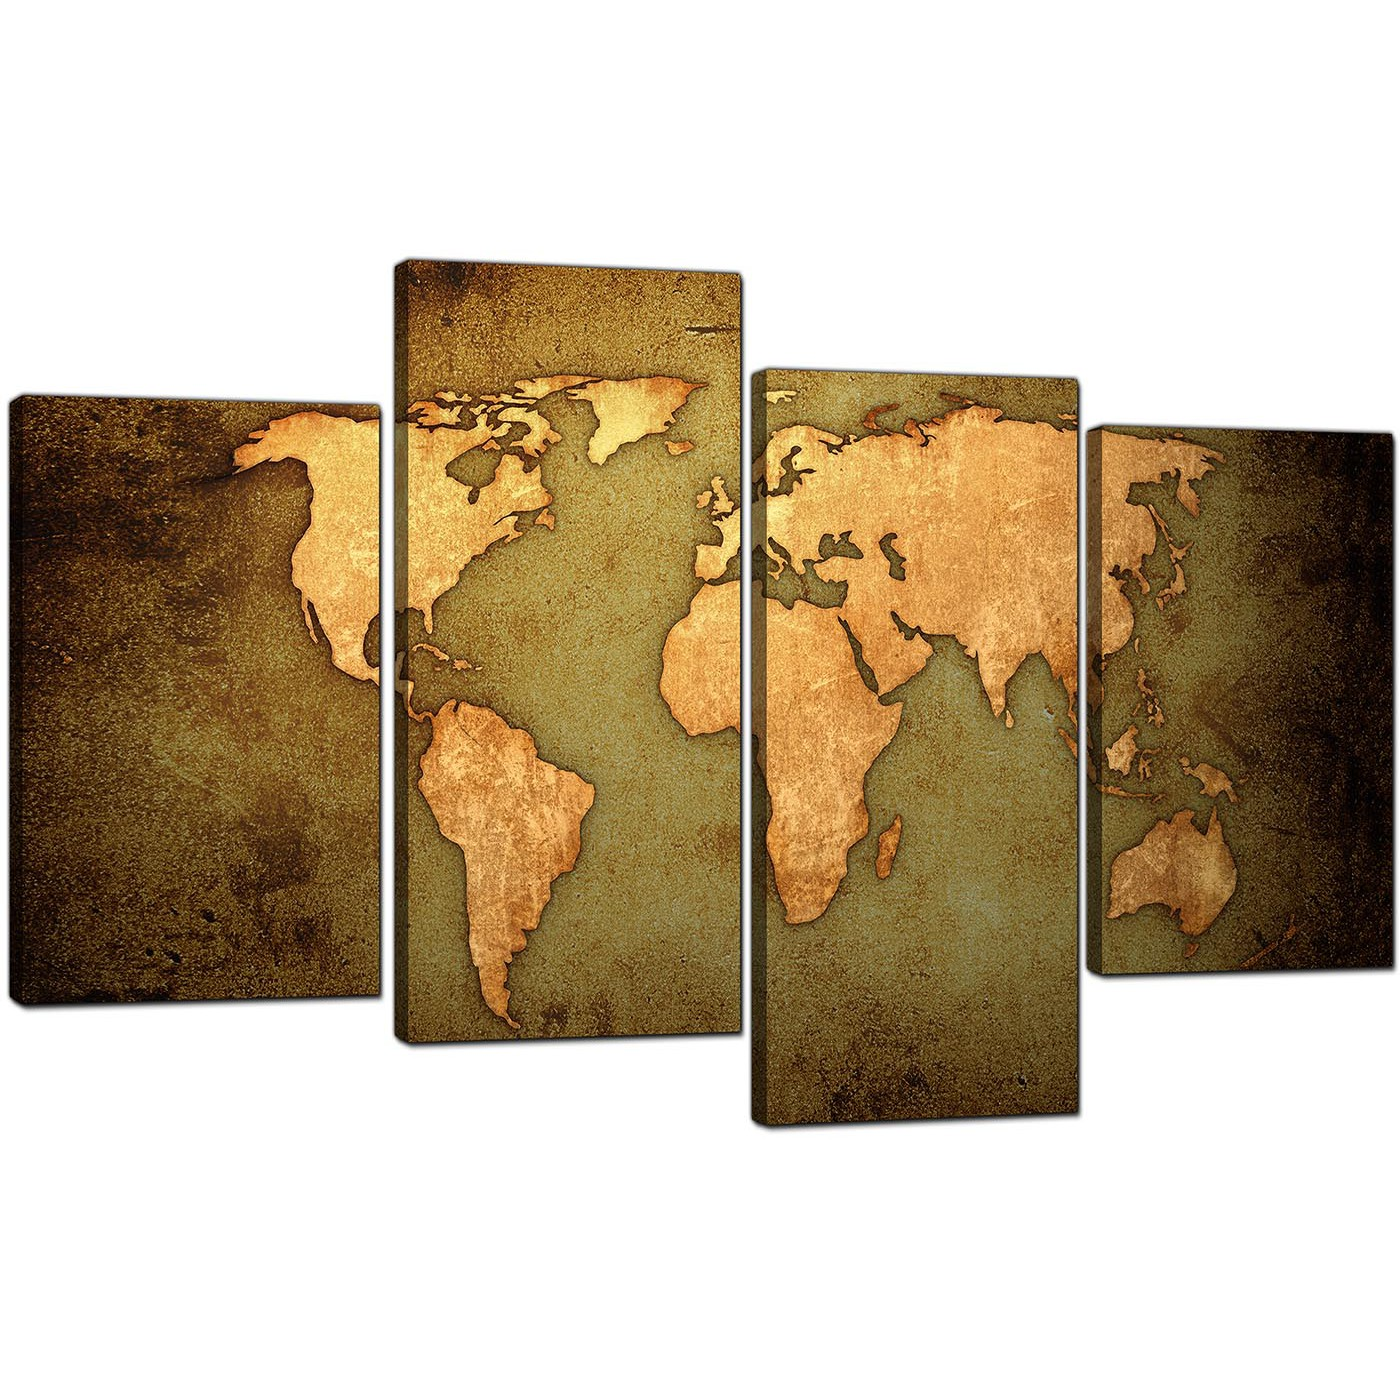 display gallery item  world map canvas art in antique style for officedisplay gallery item  . canvas prints of a world map in green and brown for your living room